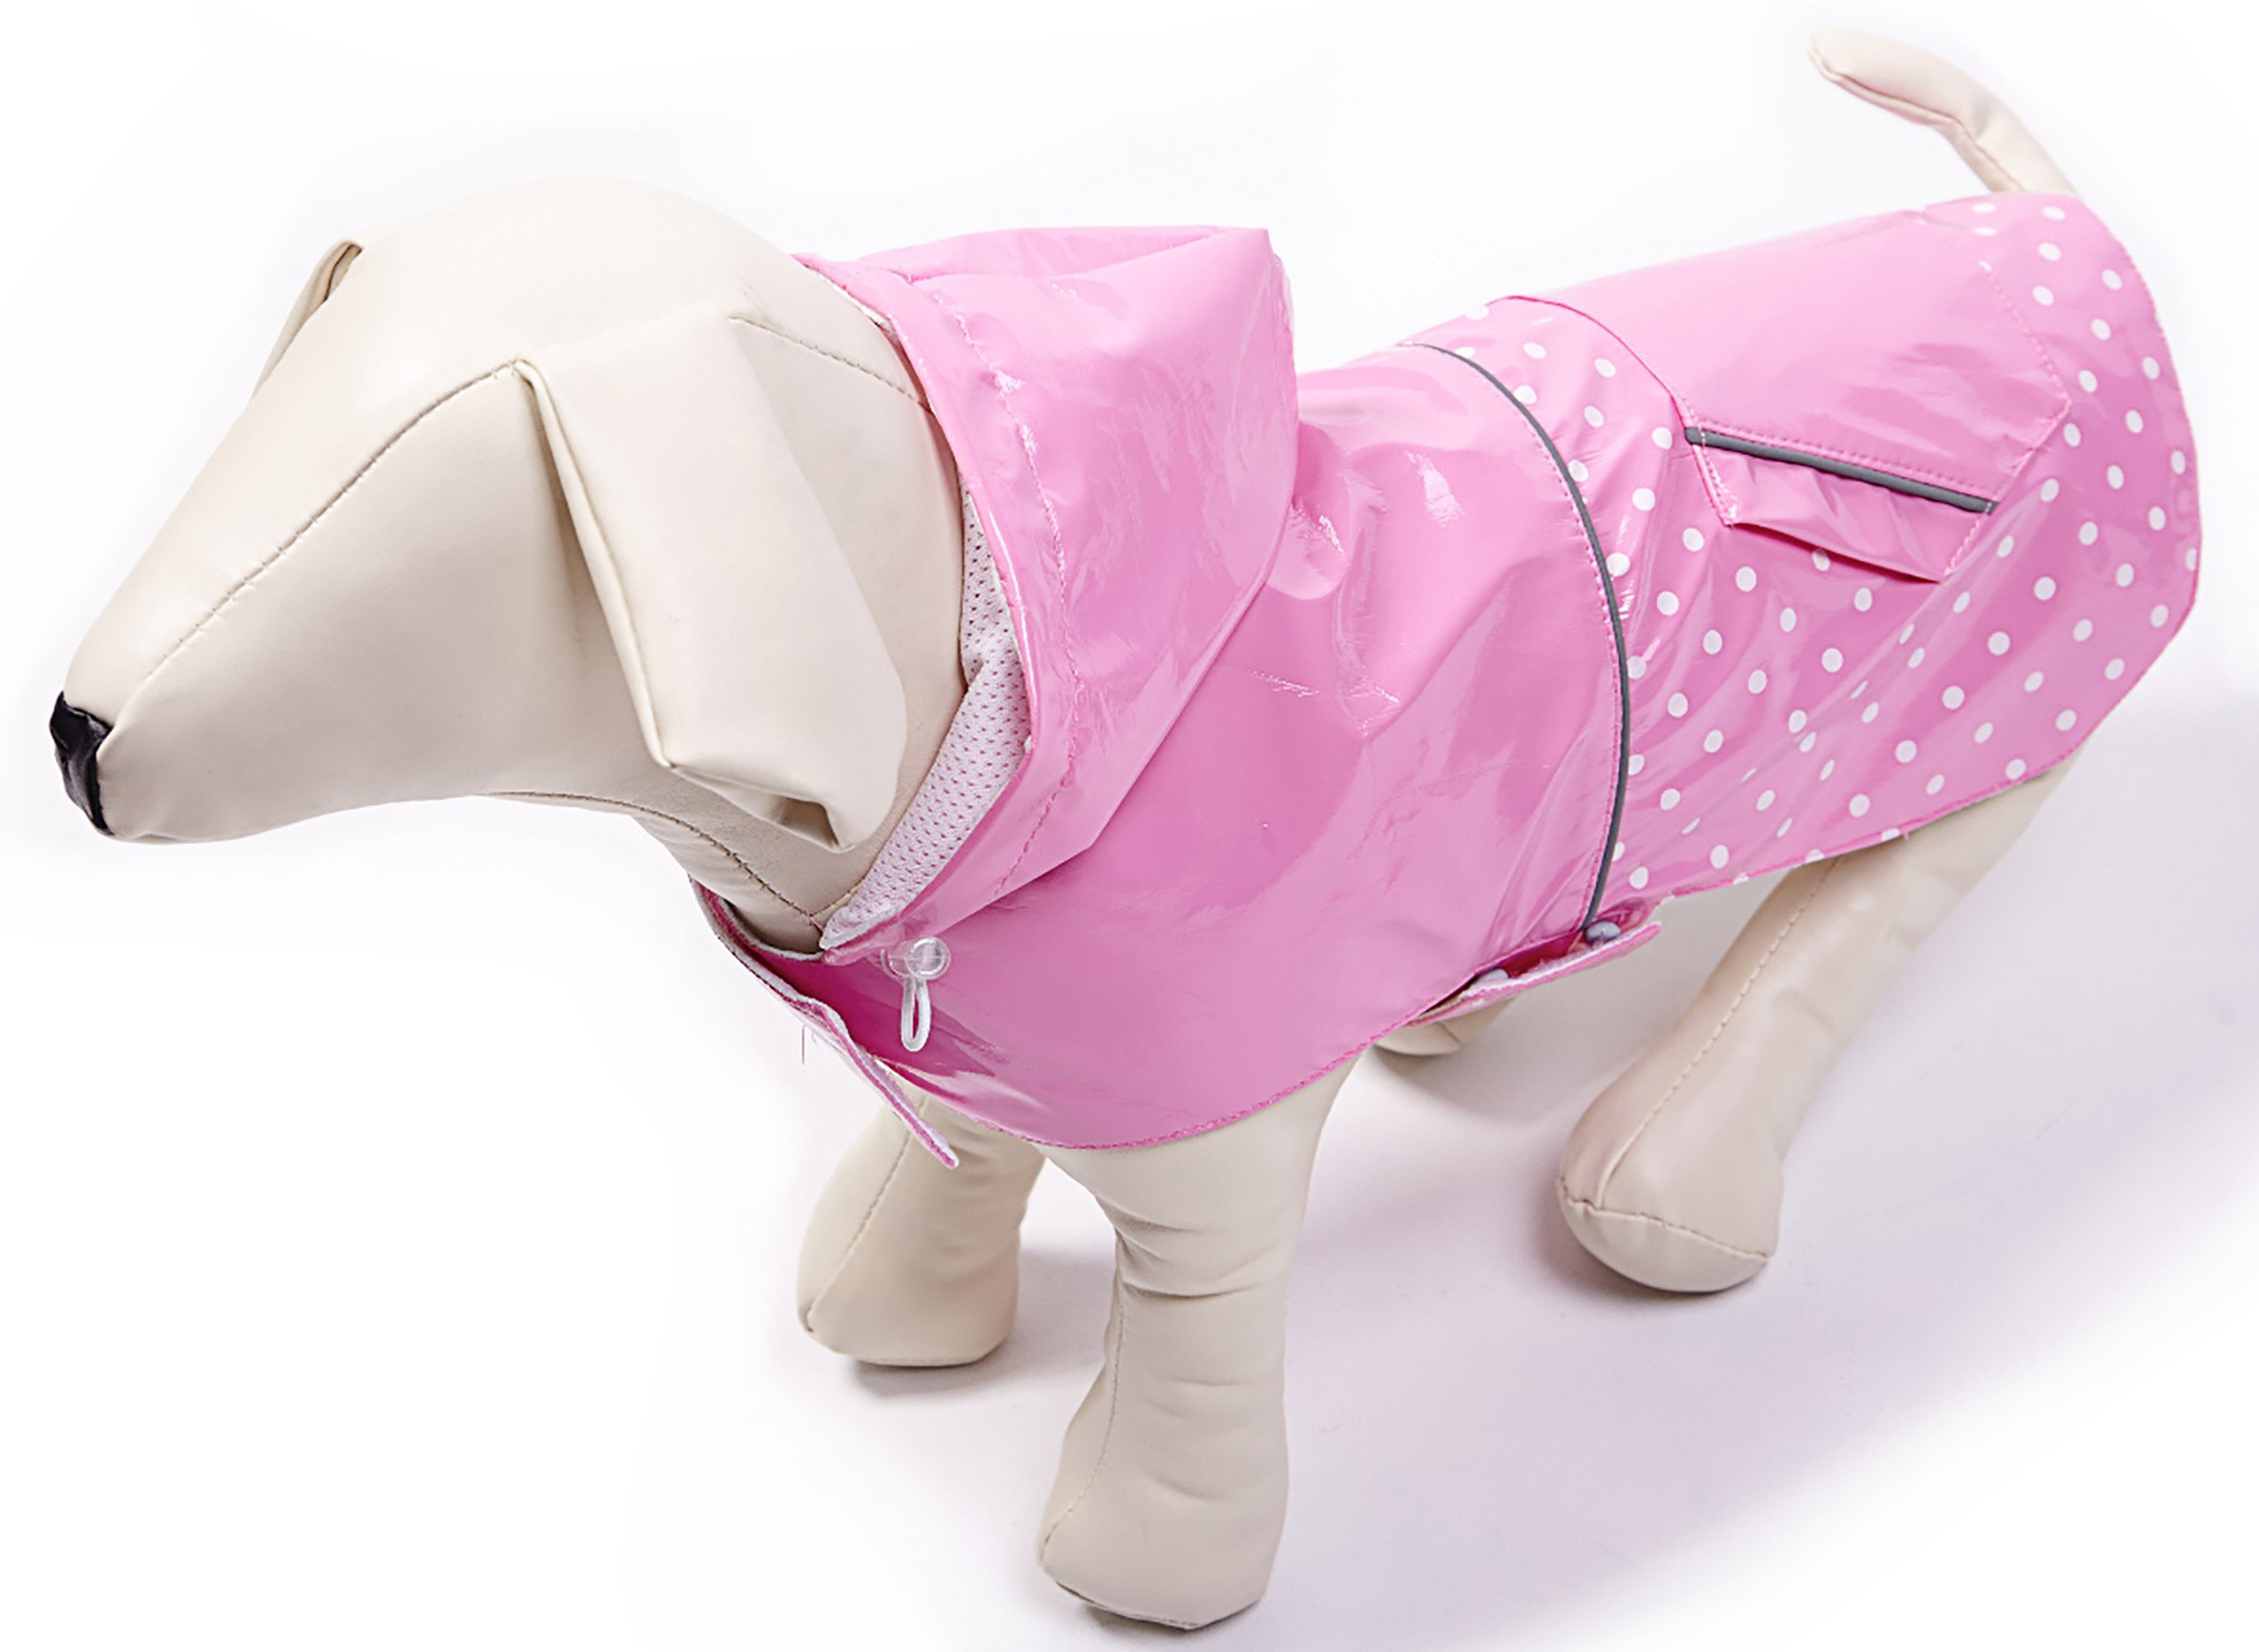 BINGPET BA1888 Fashion Reflective Waterproof Dog Raincoat Cute Dots Pattern Outdoor Hooded Rain Coat for Dogs, Pink S